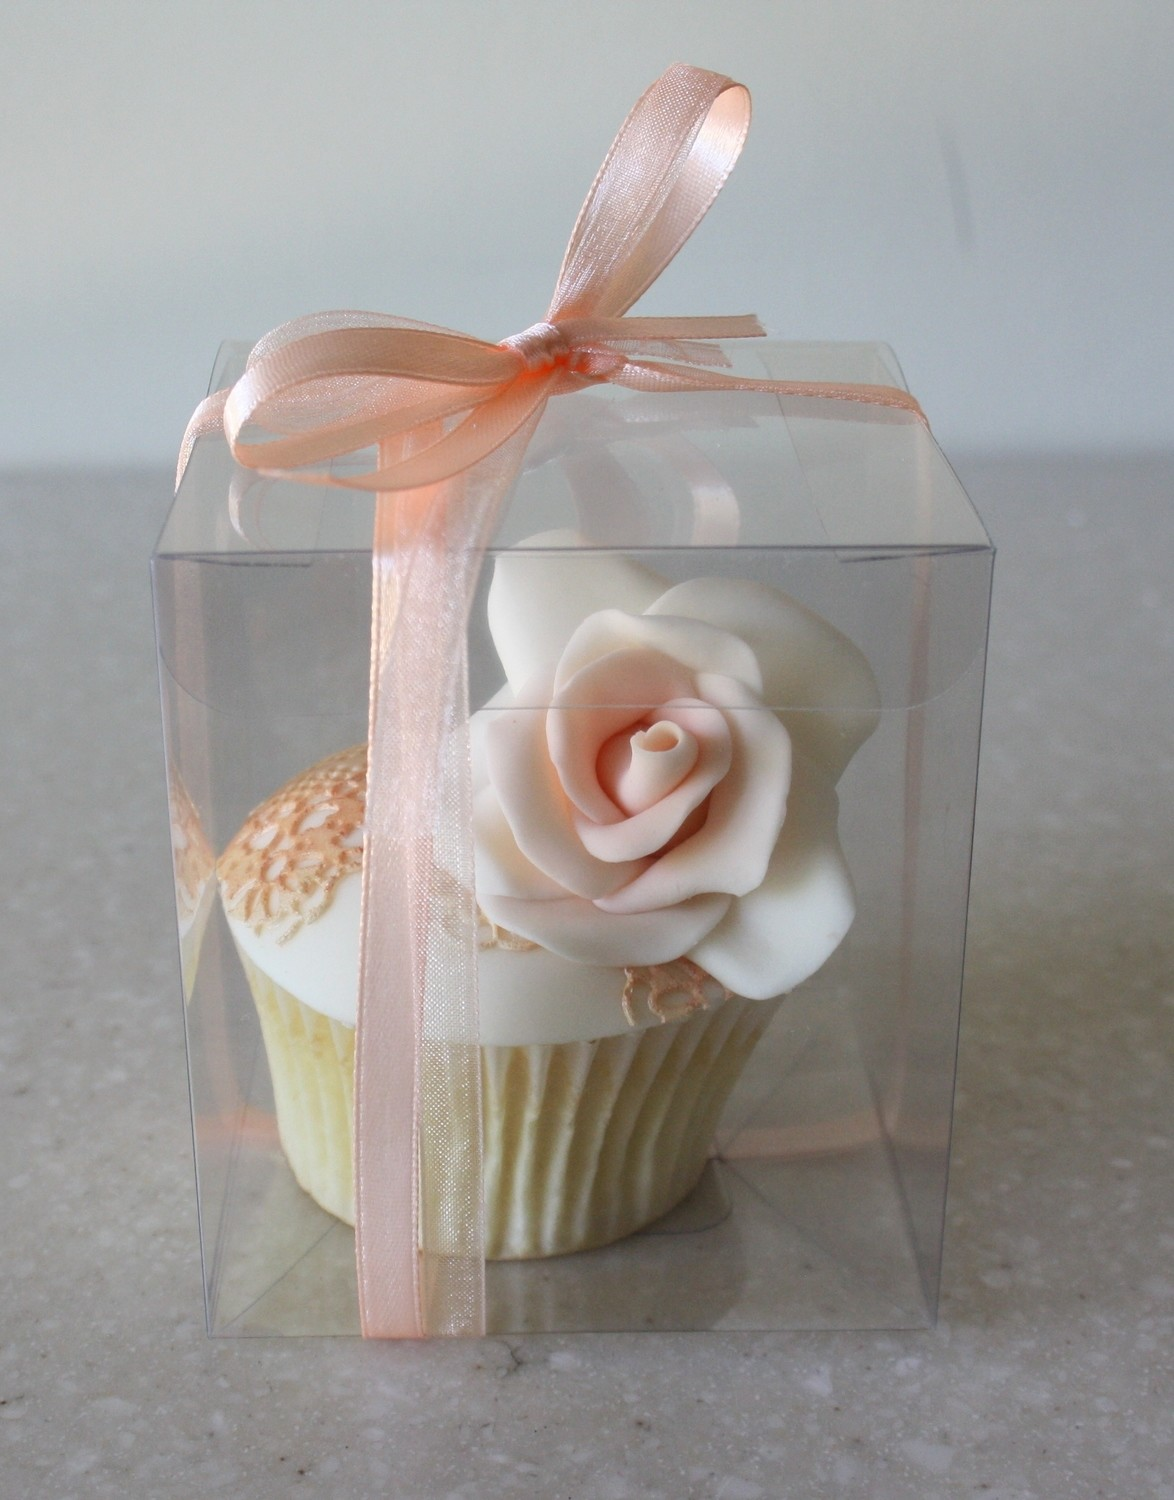 #Clear Cupcake Display Box 8x8x9cm - Διάφανο Κουτάκι για Cupcake 8x8x9εκ